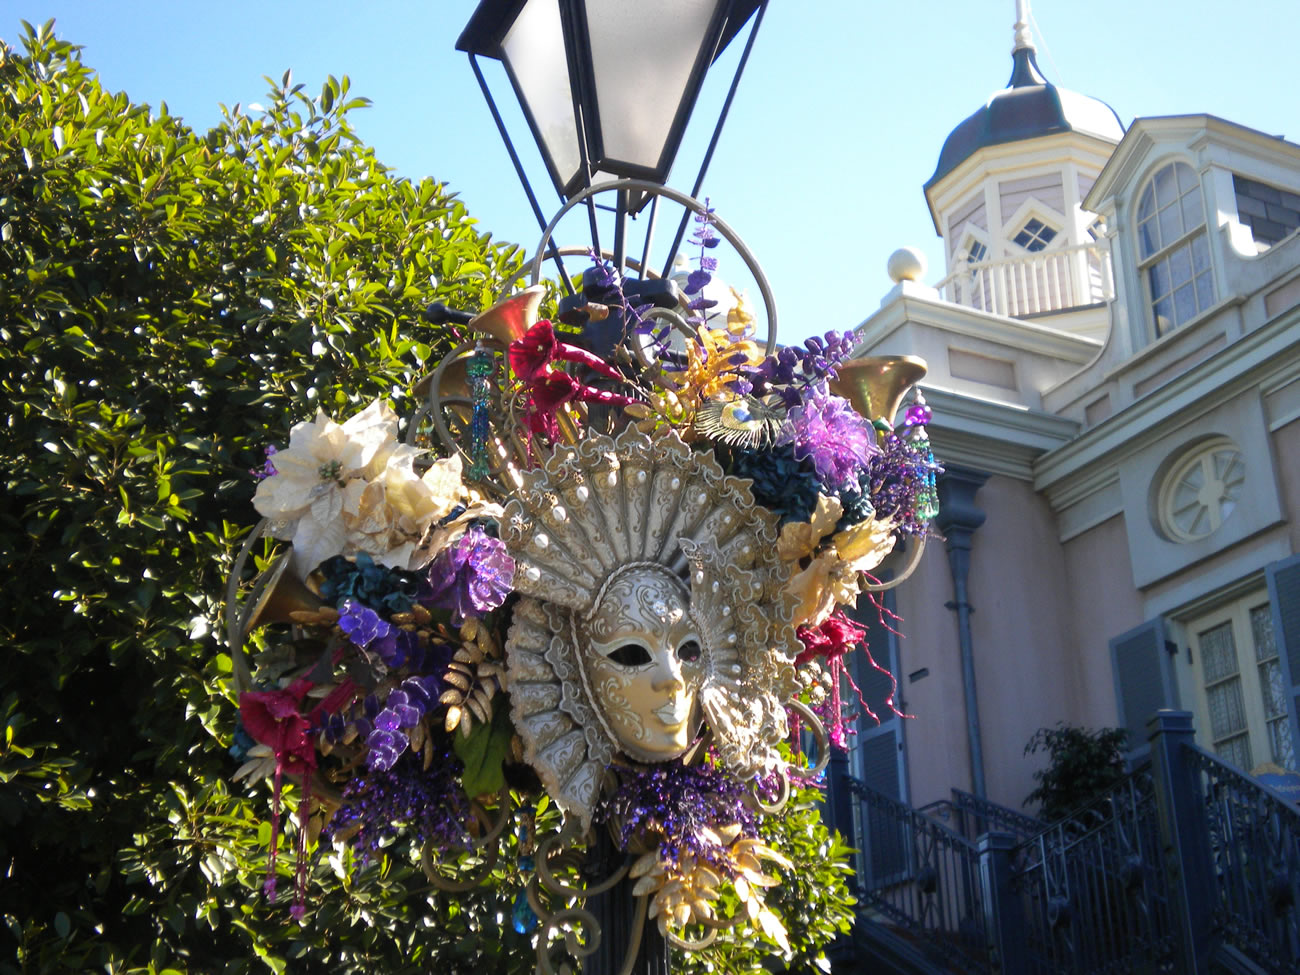 The disneyland dilettante kidnap the magic nos holiday wall originally though they were decorated in a slightly more restrained fashion with the ornaments on and in a base of evergreen thats how it was some years amipublicfo Images